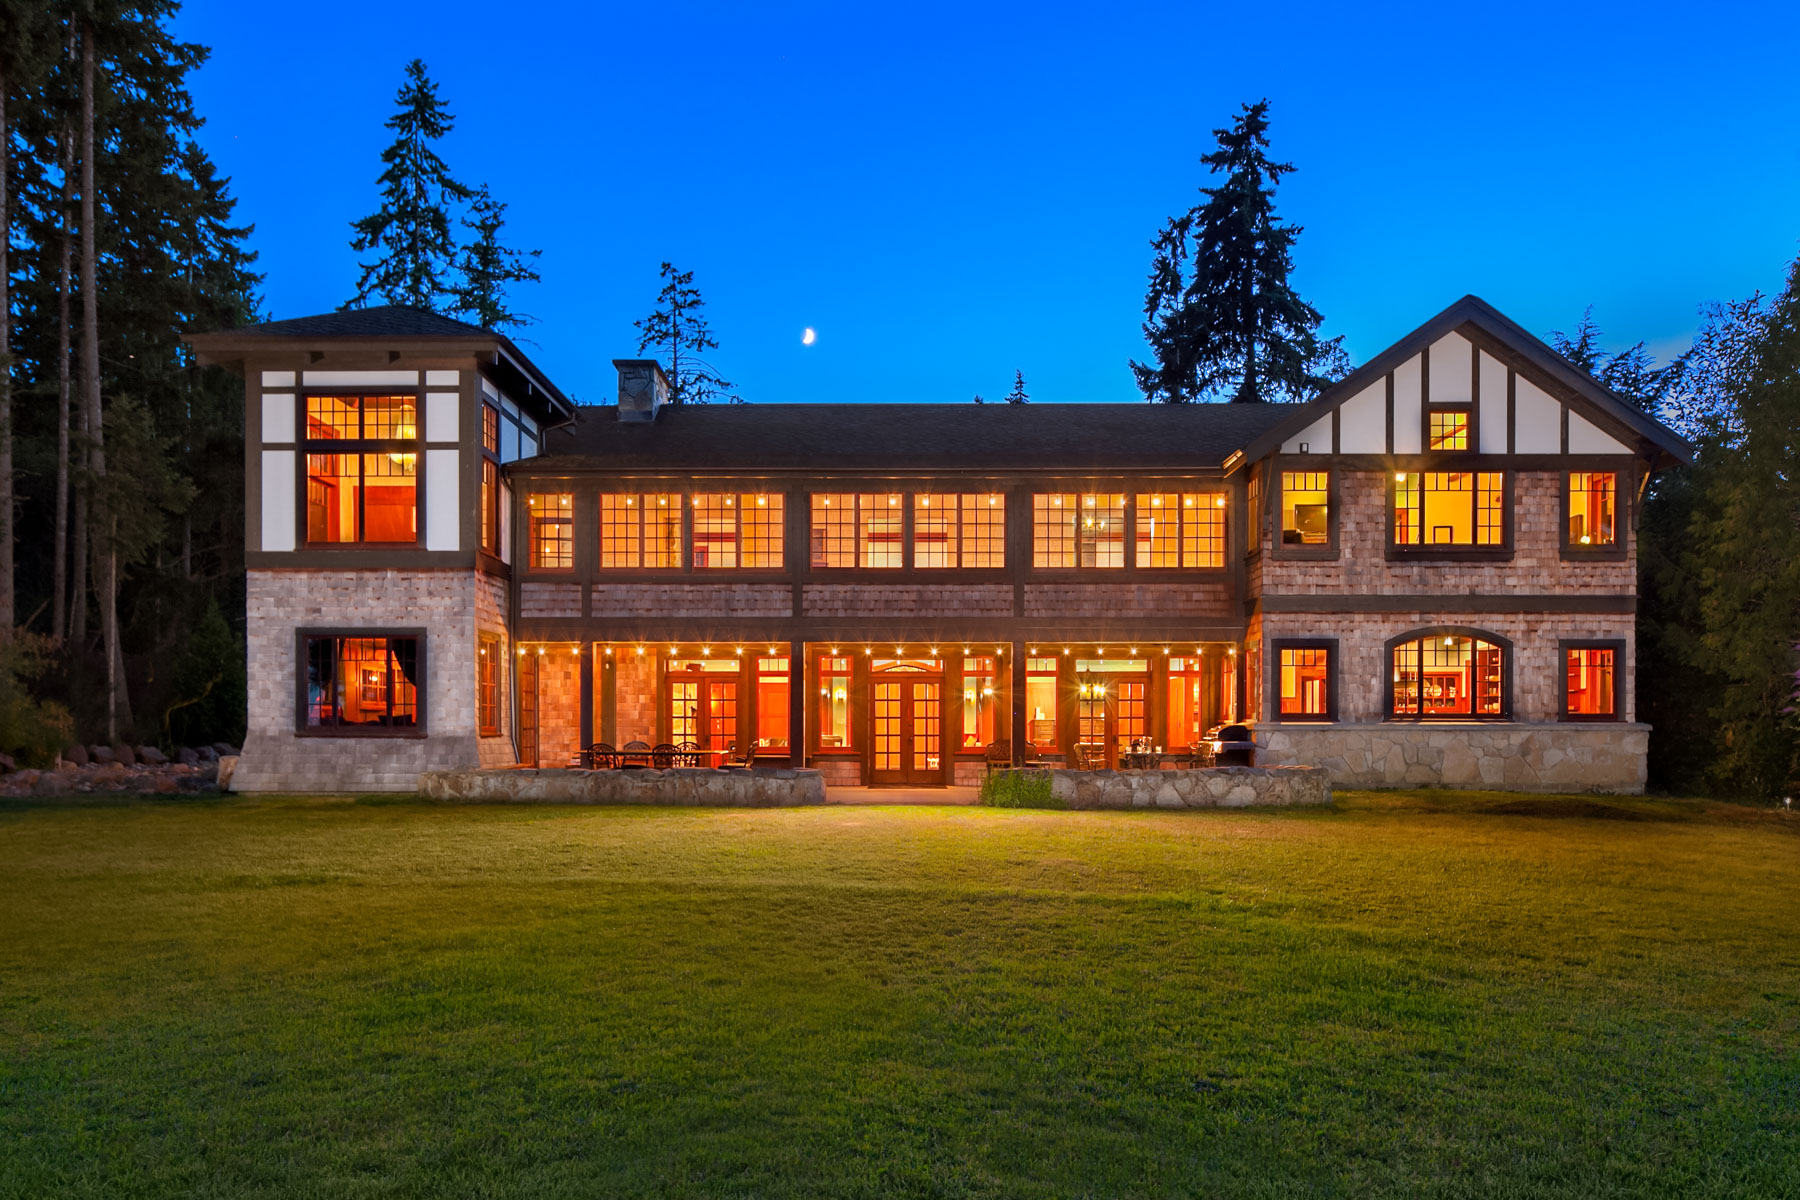 獨棟家庭住宅 為 出售 在 The Lodge at Blakley Harbor 10254 NE Country Club Rd Bainbridge Island, 華盛頓州 98110 美國